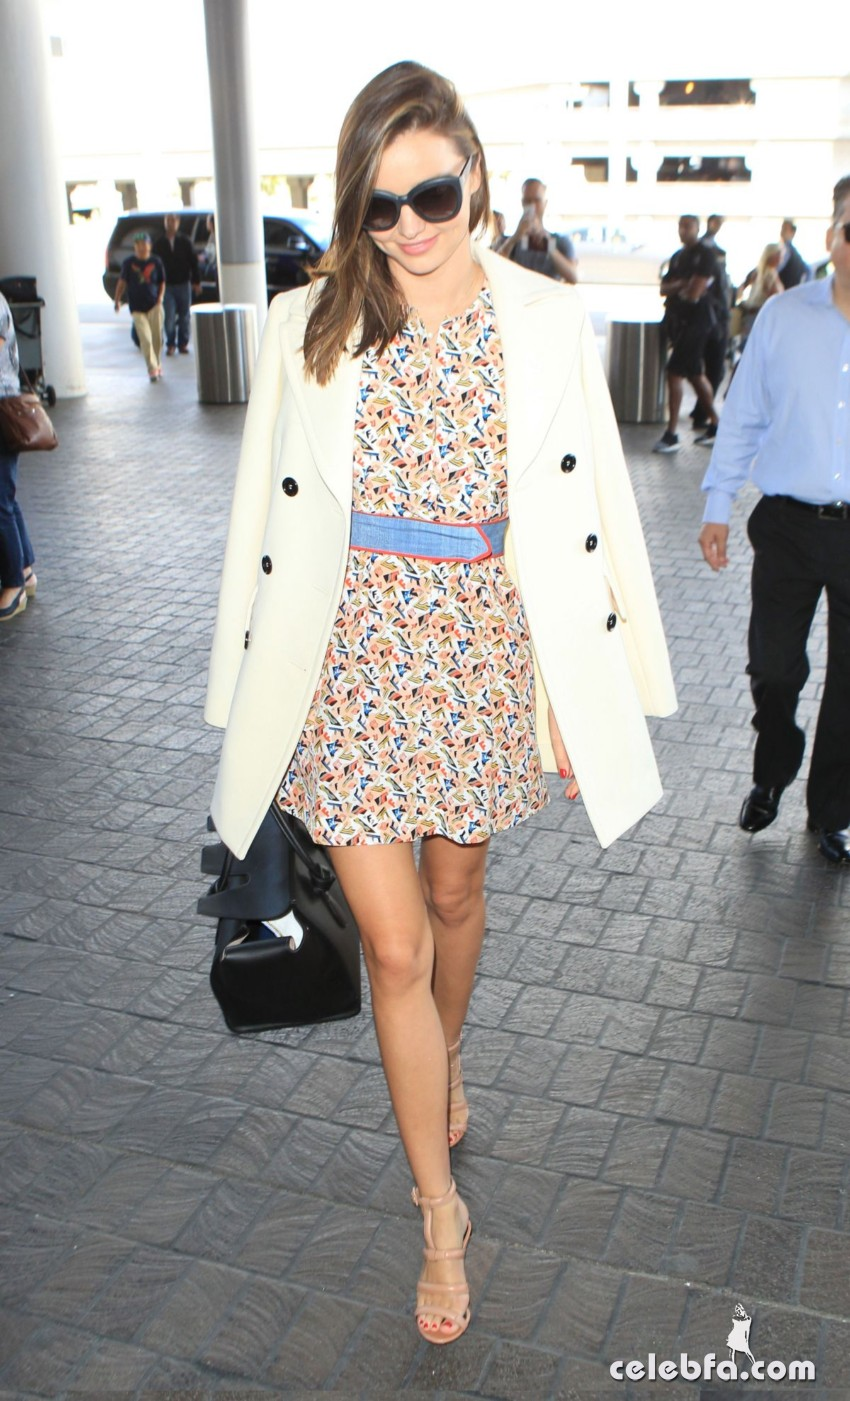 miranda-kerr-at-los-angeles-international-airport (5)